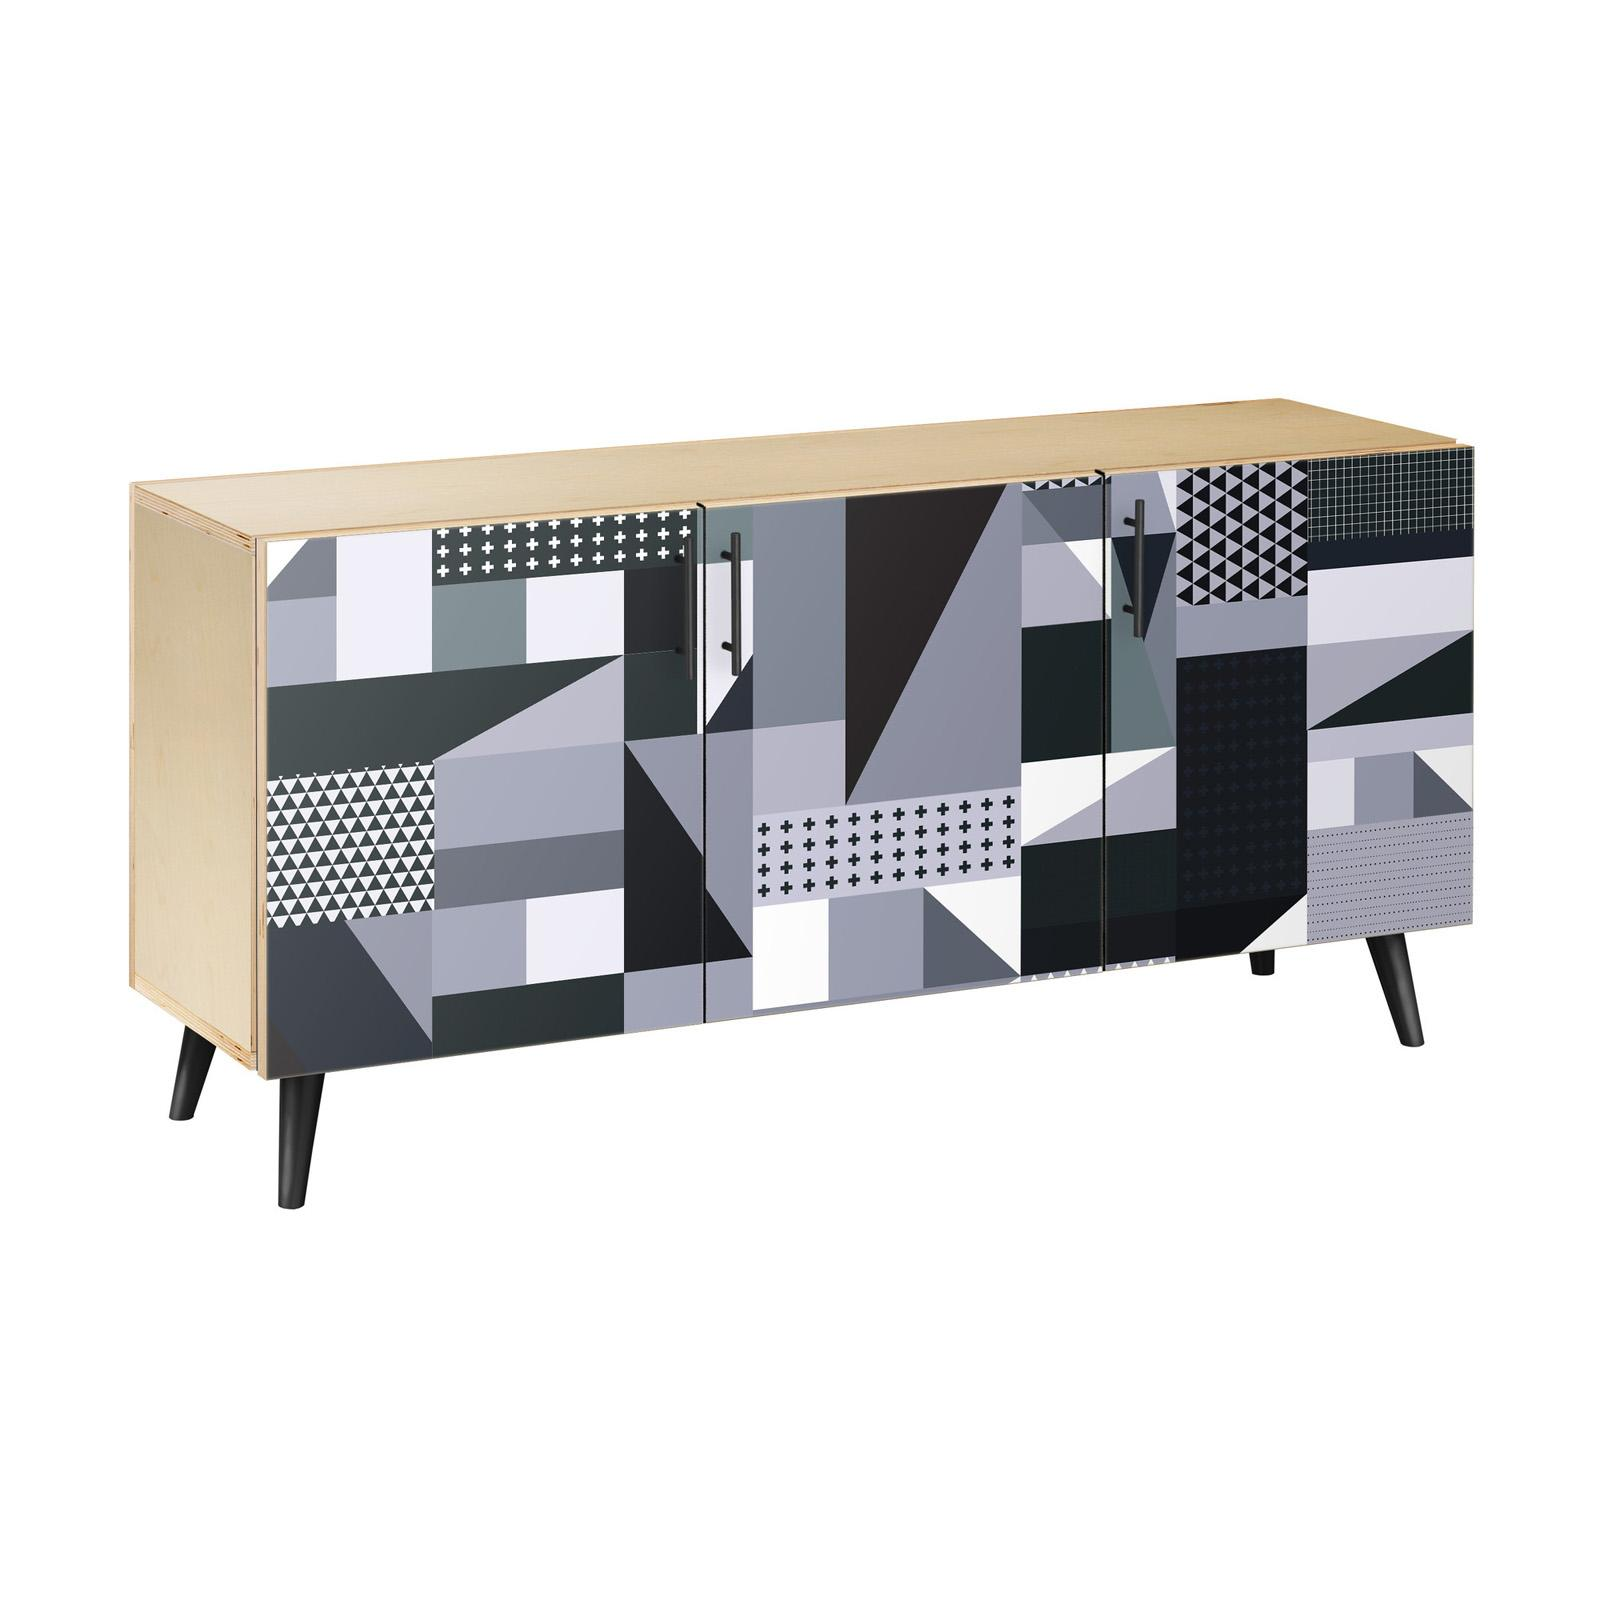 NyeKoncept Grayscale Patchwork Flare Sideboard - 13005052